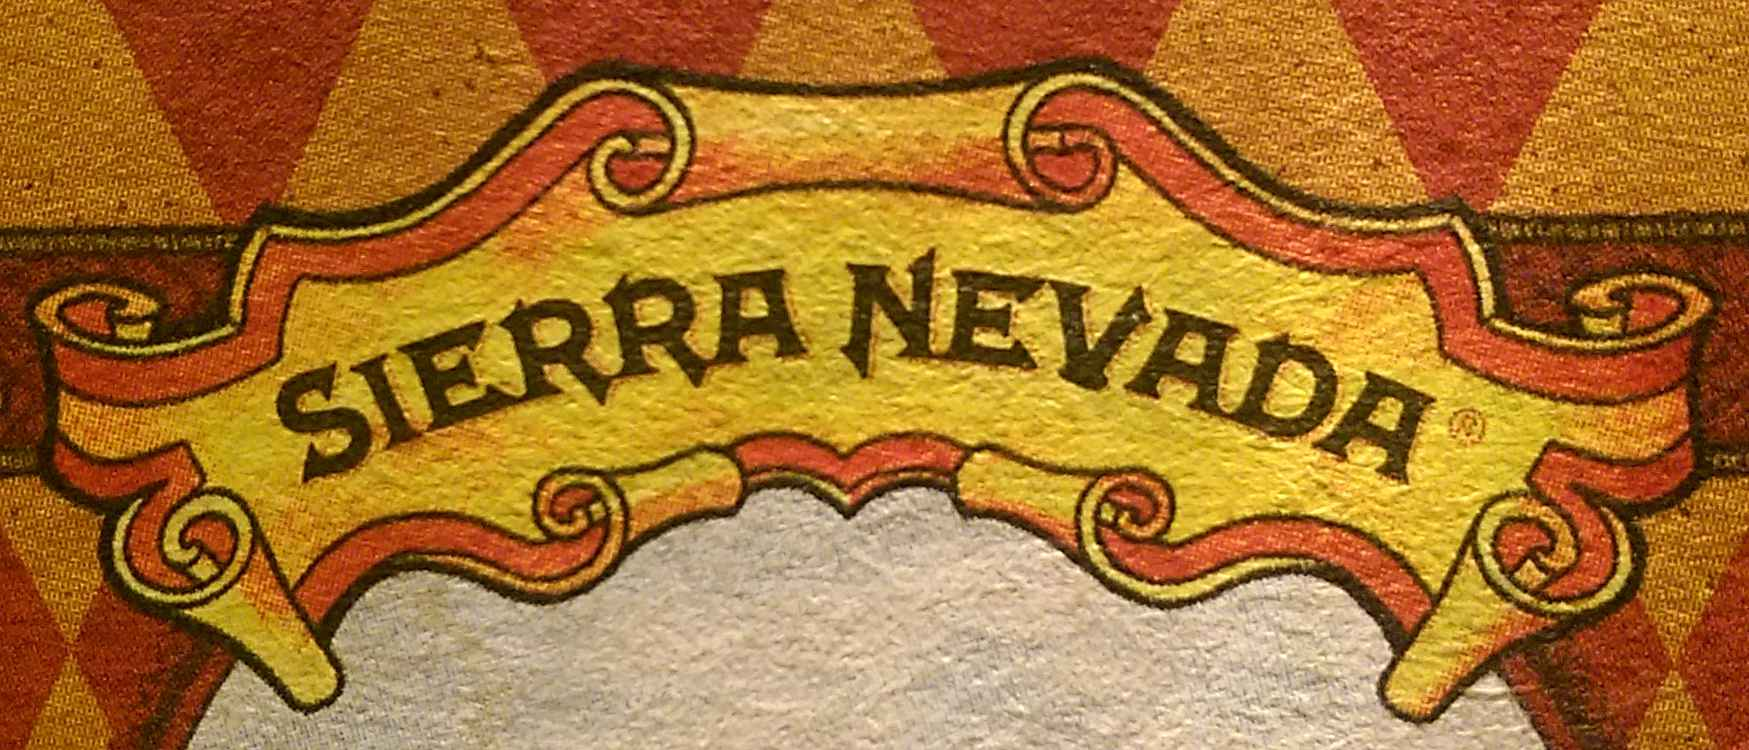 A Visit at the Sierra Nevada Brewing Company